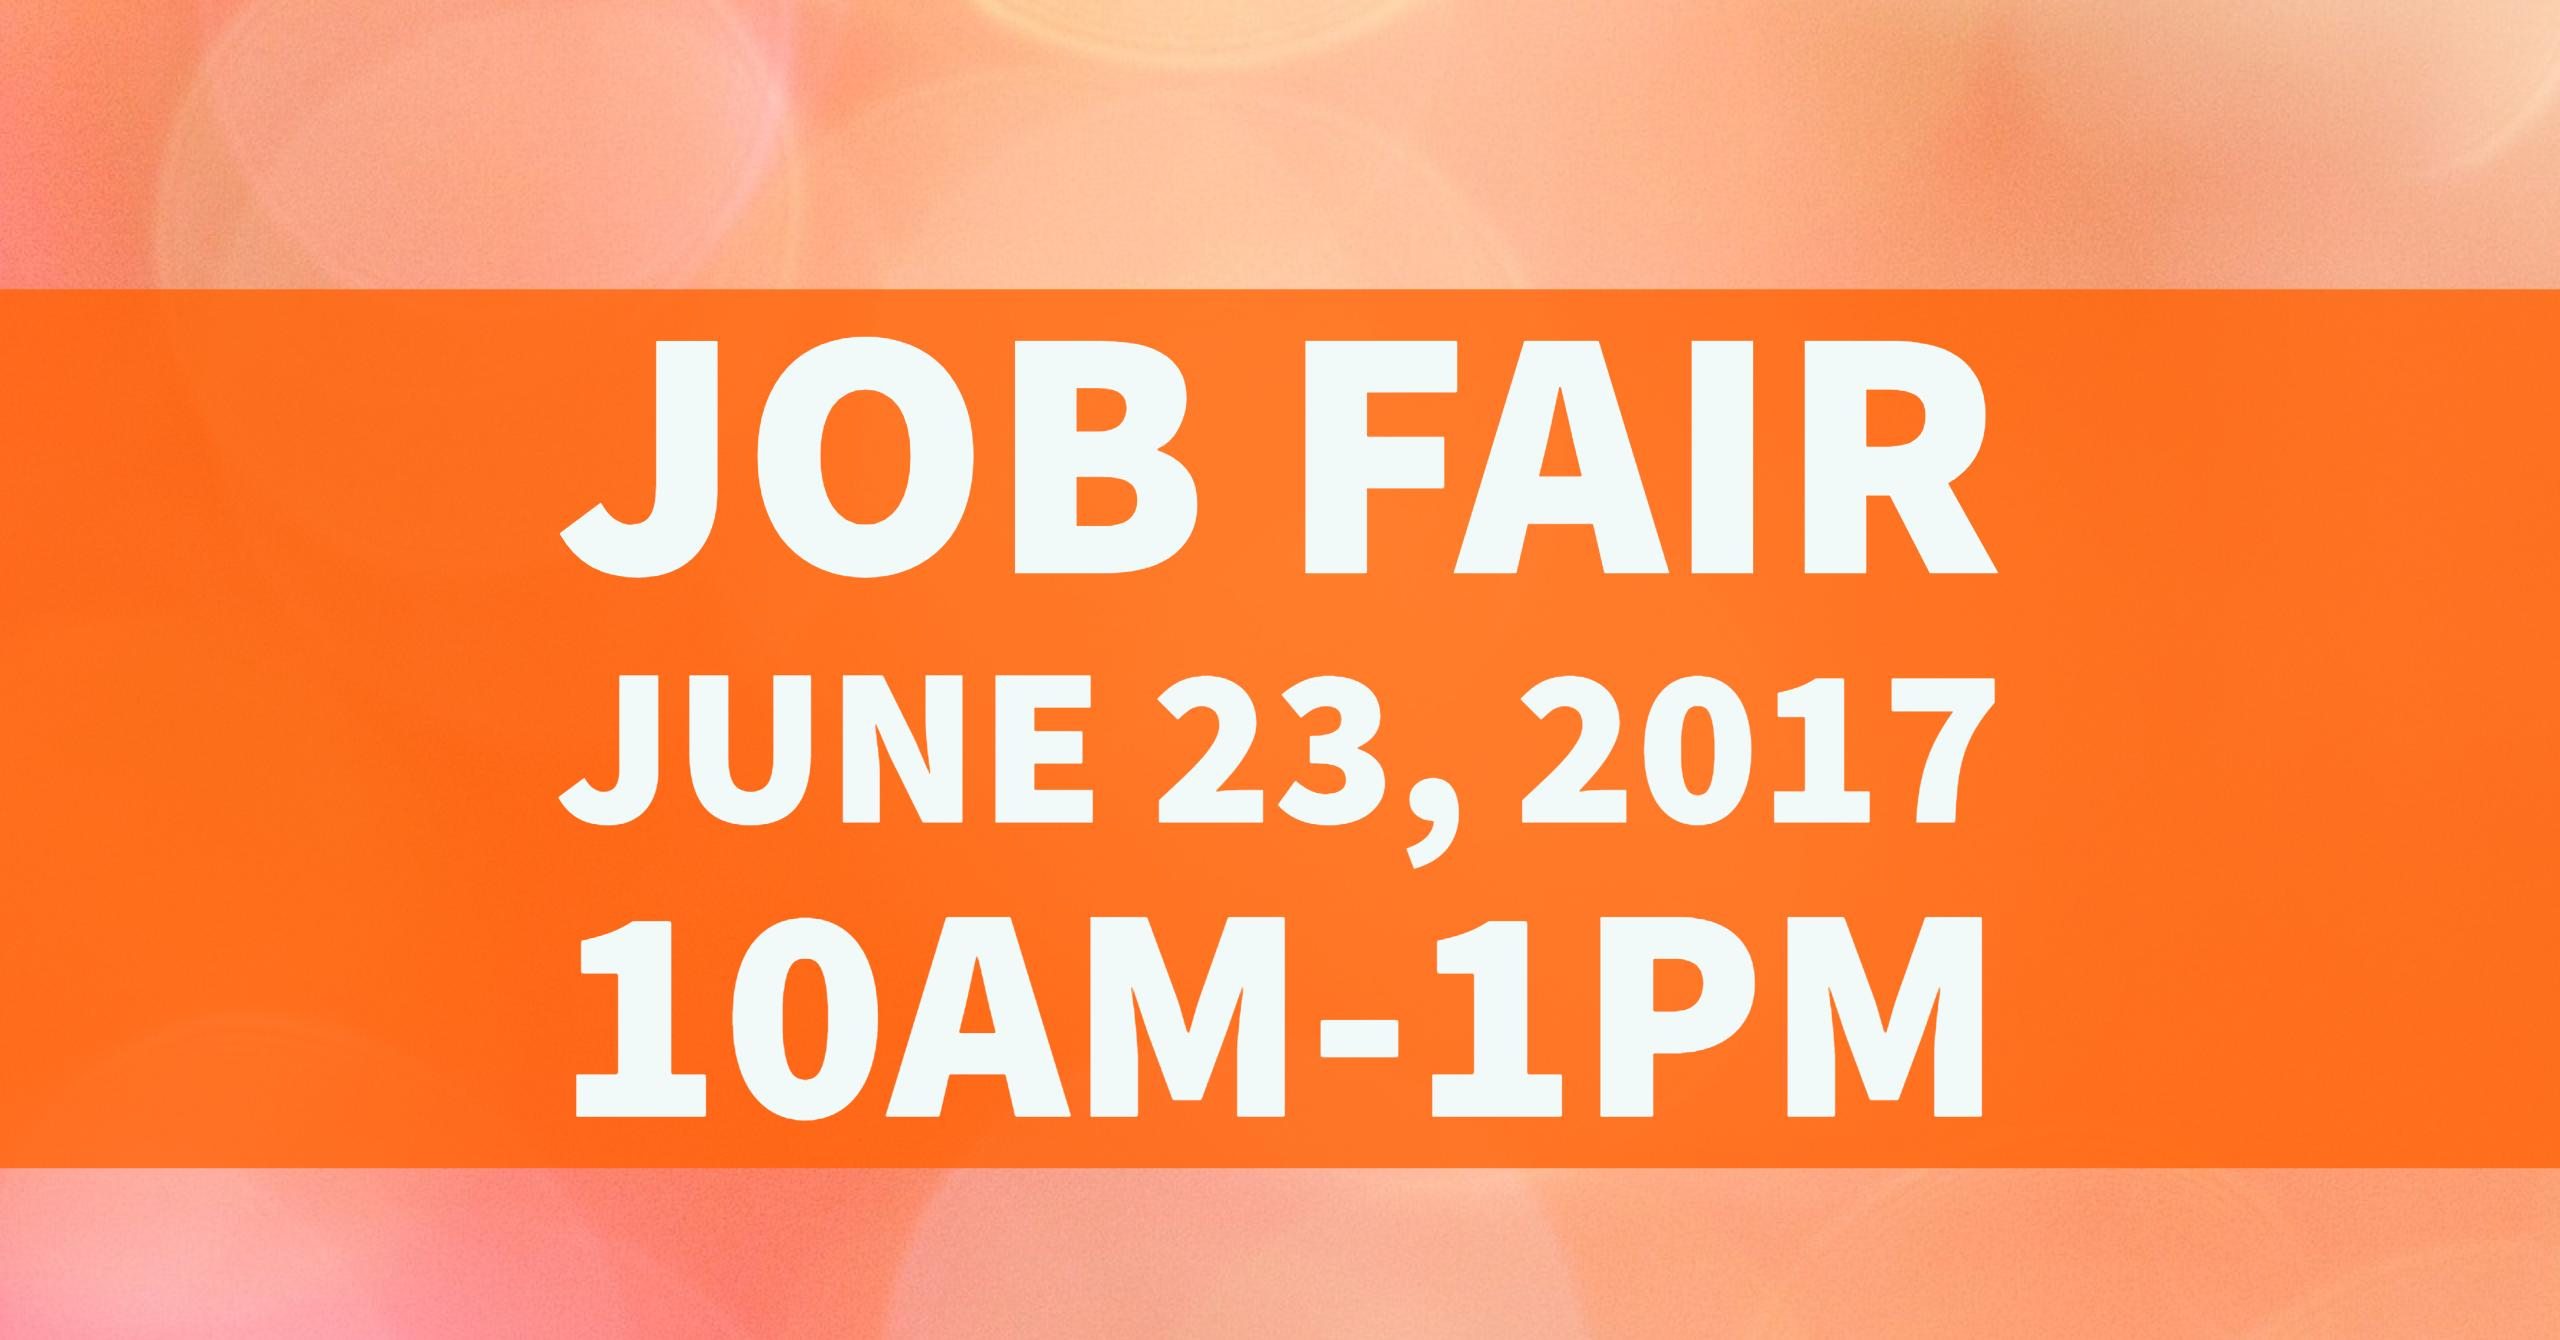 Join us for our Job Fair June 23!